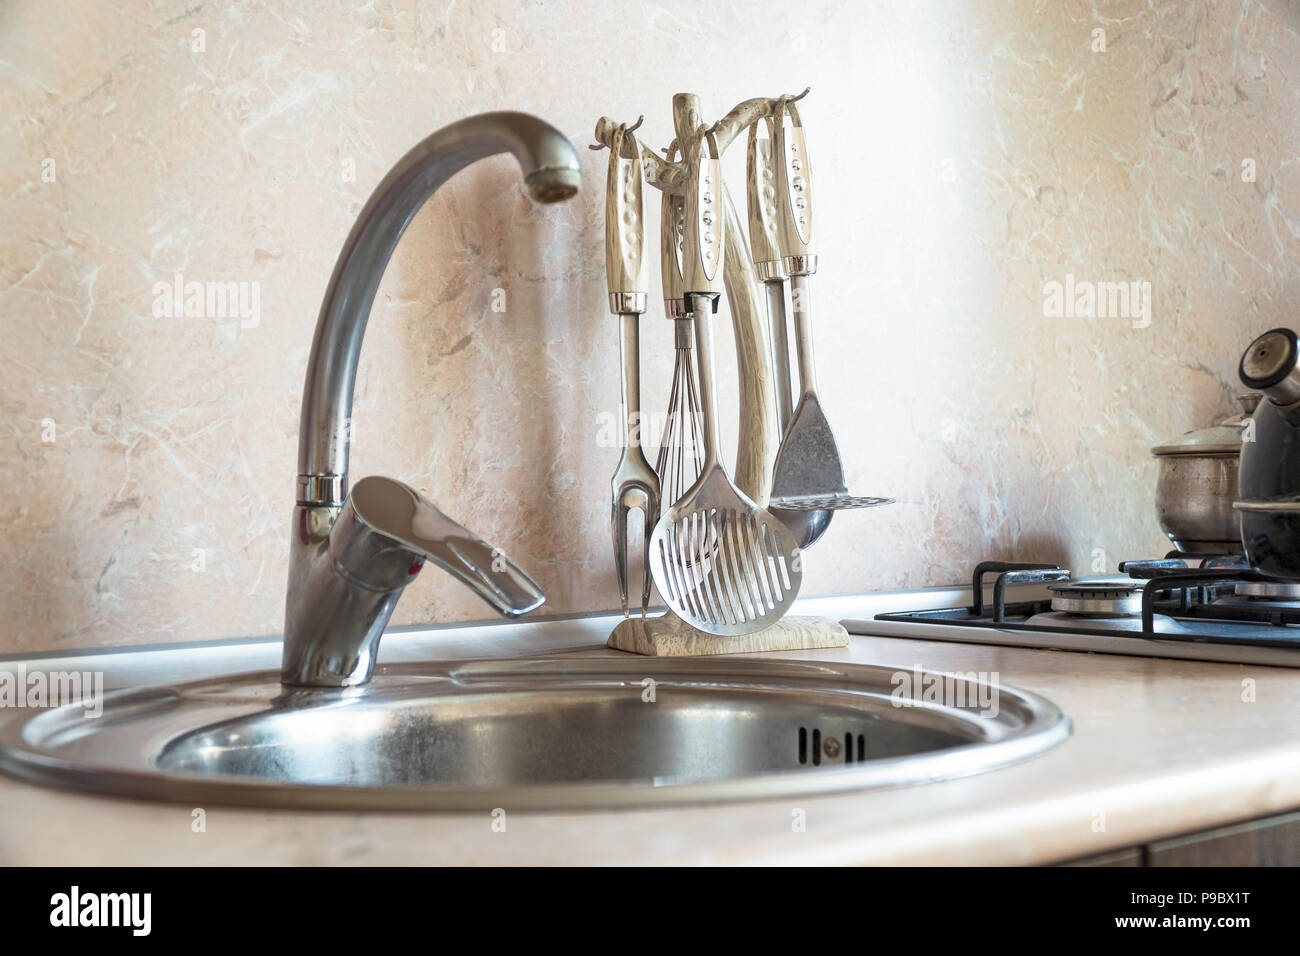 Faucet, sink and kitchen utensils. Selective focus - Stock Image